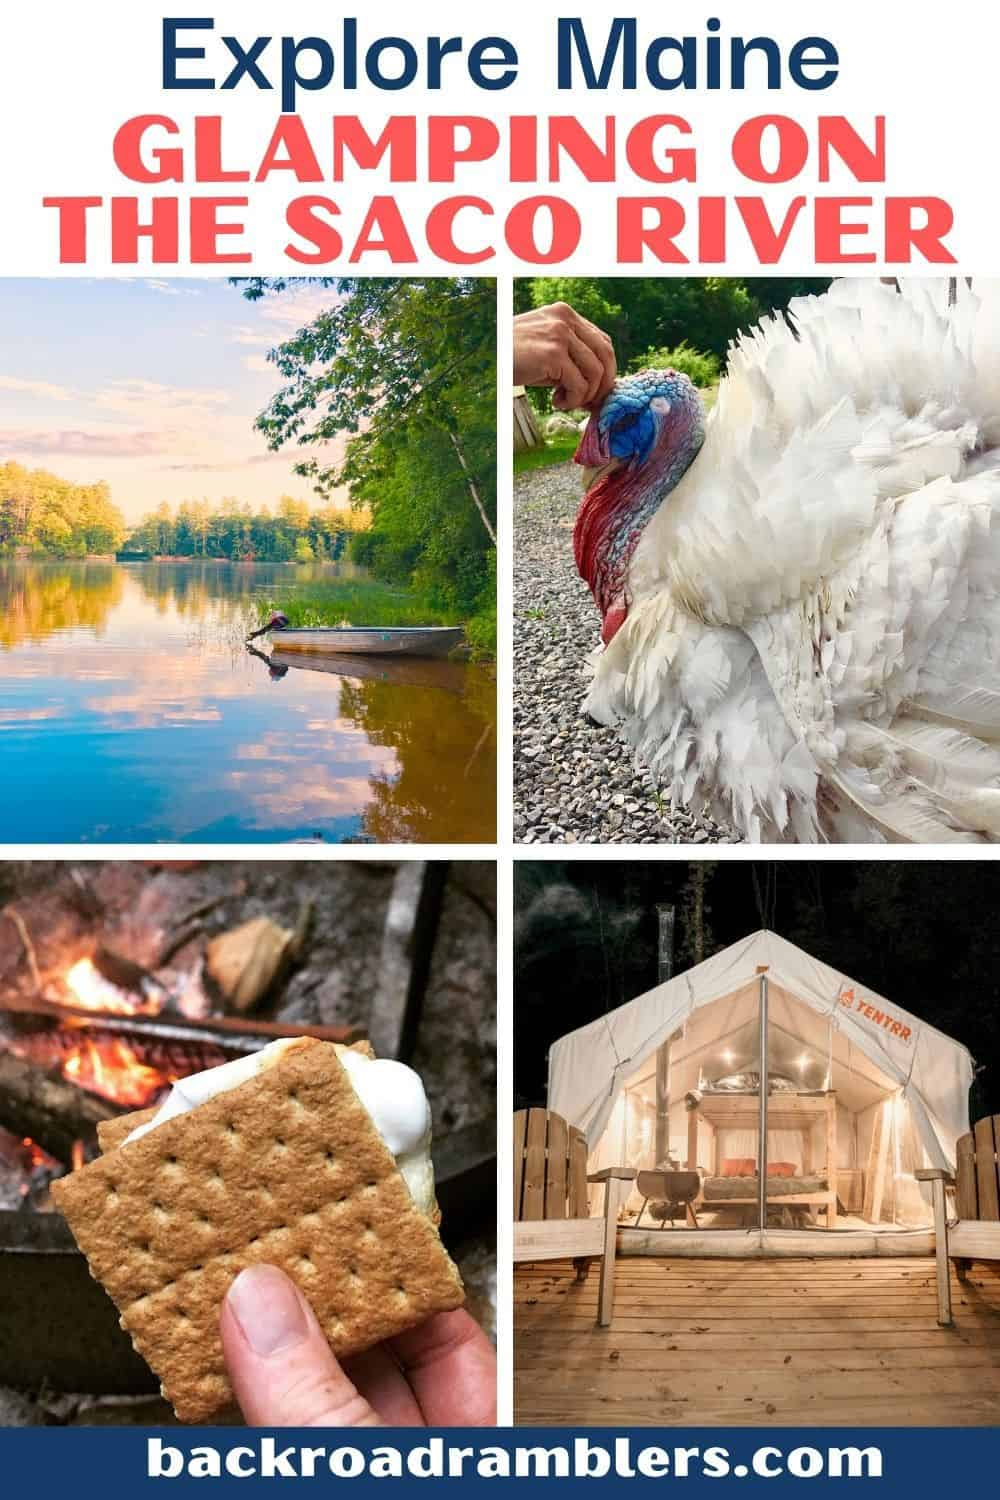 A collage of photos featuring a glamping spot on the Saco River in Maine. Text Overlay: Explore Maine! Glamping on the Saco River